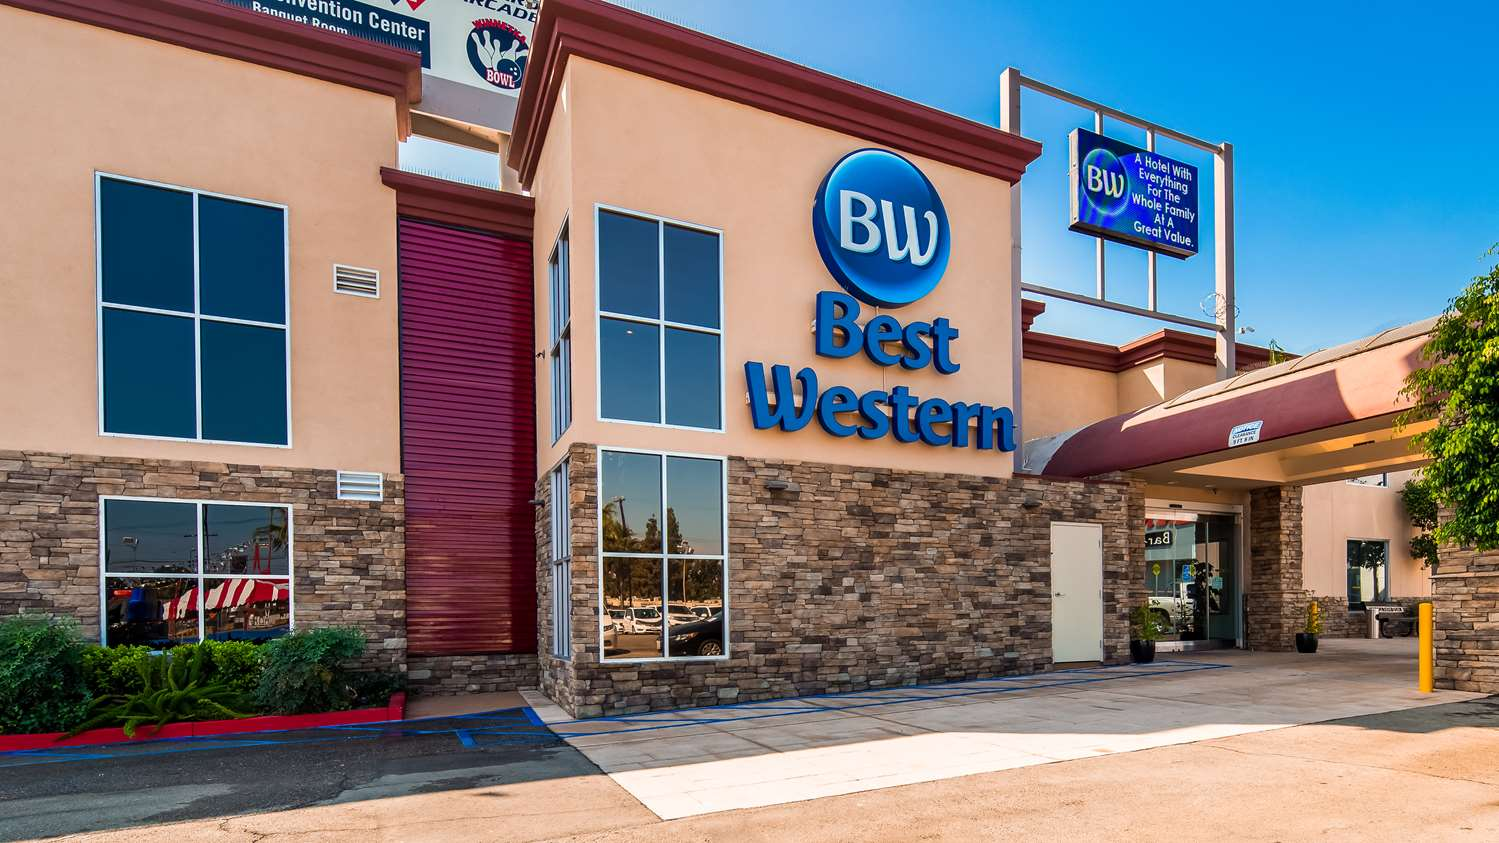 Photo of Best Western Canoga Park Front of Hotel